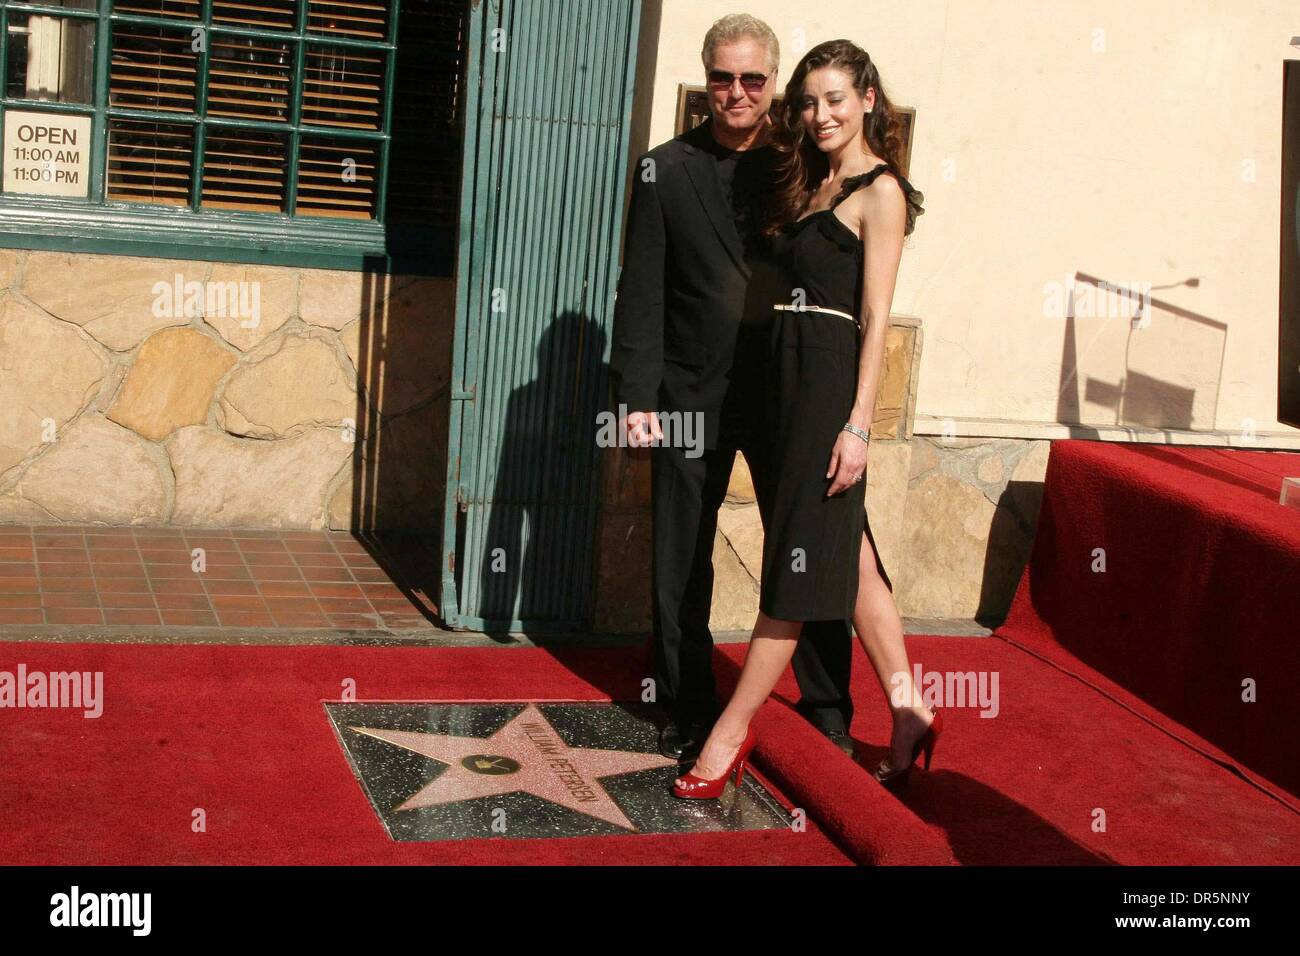 Girls pictures of william petersen and wife